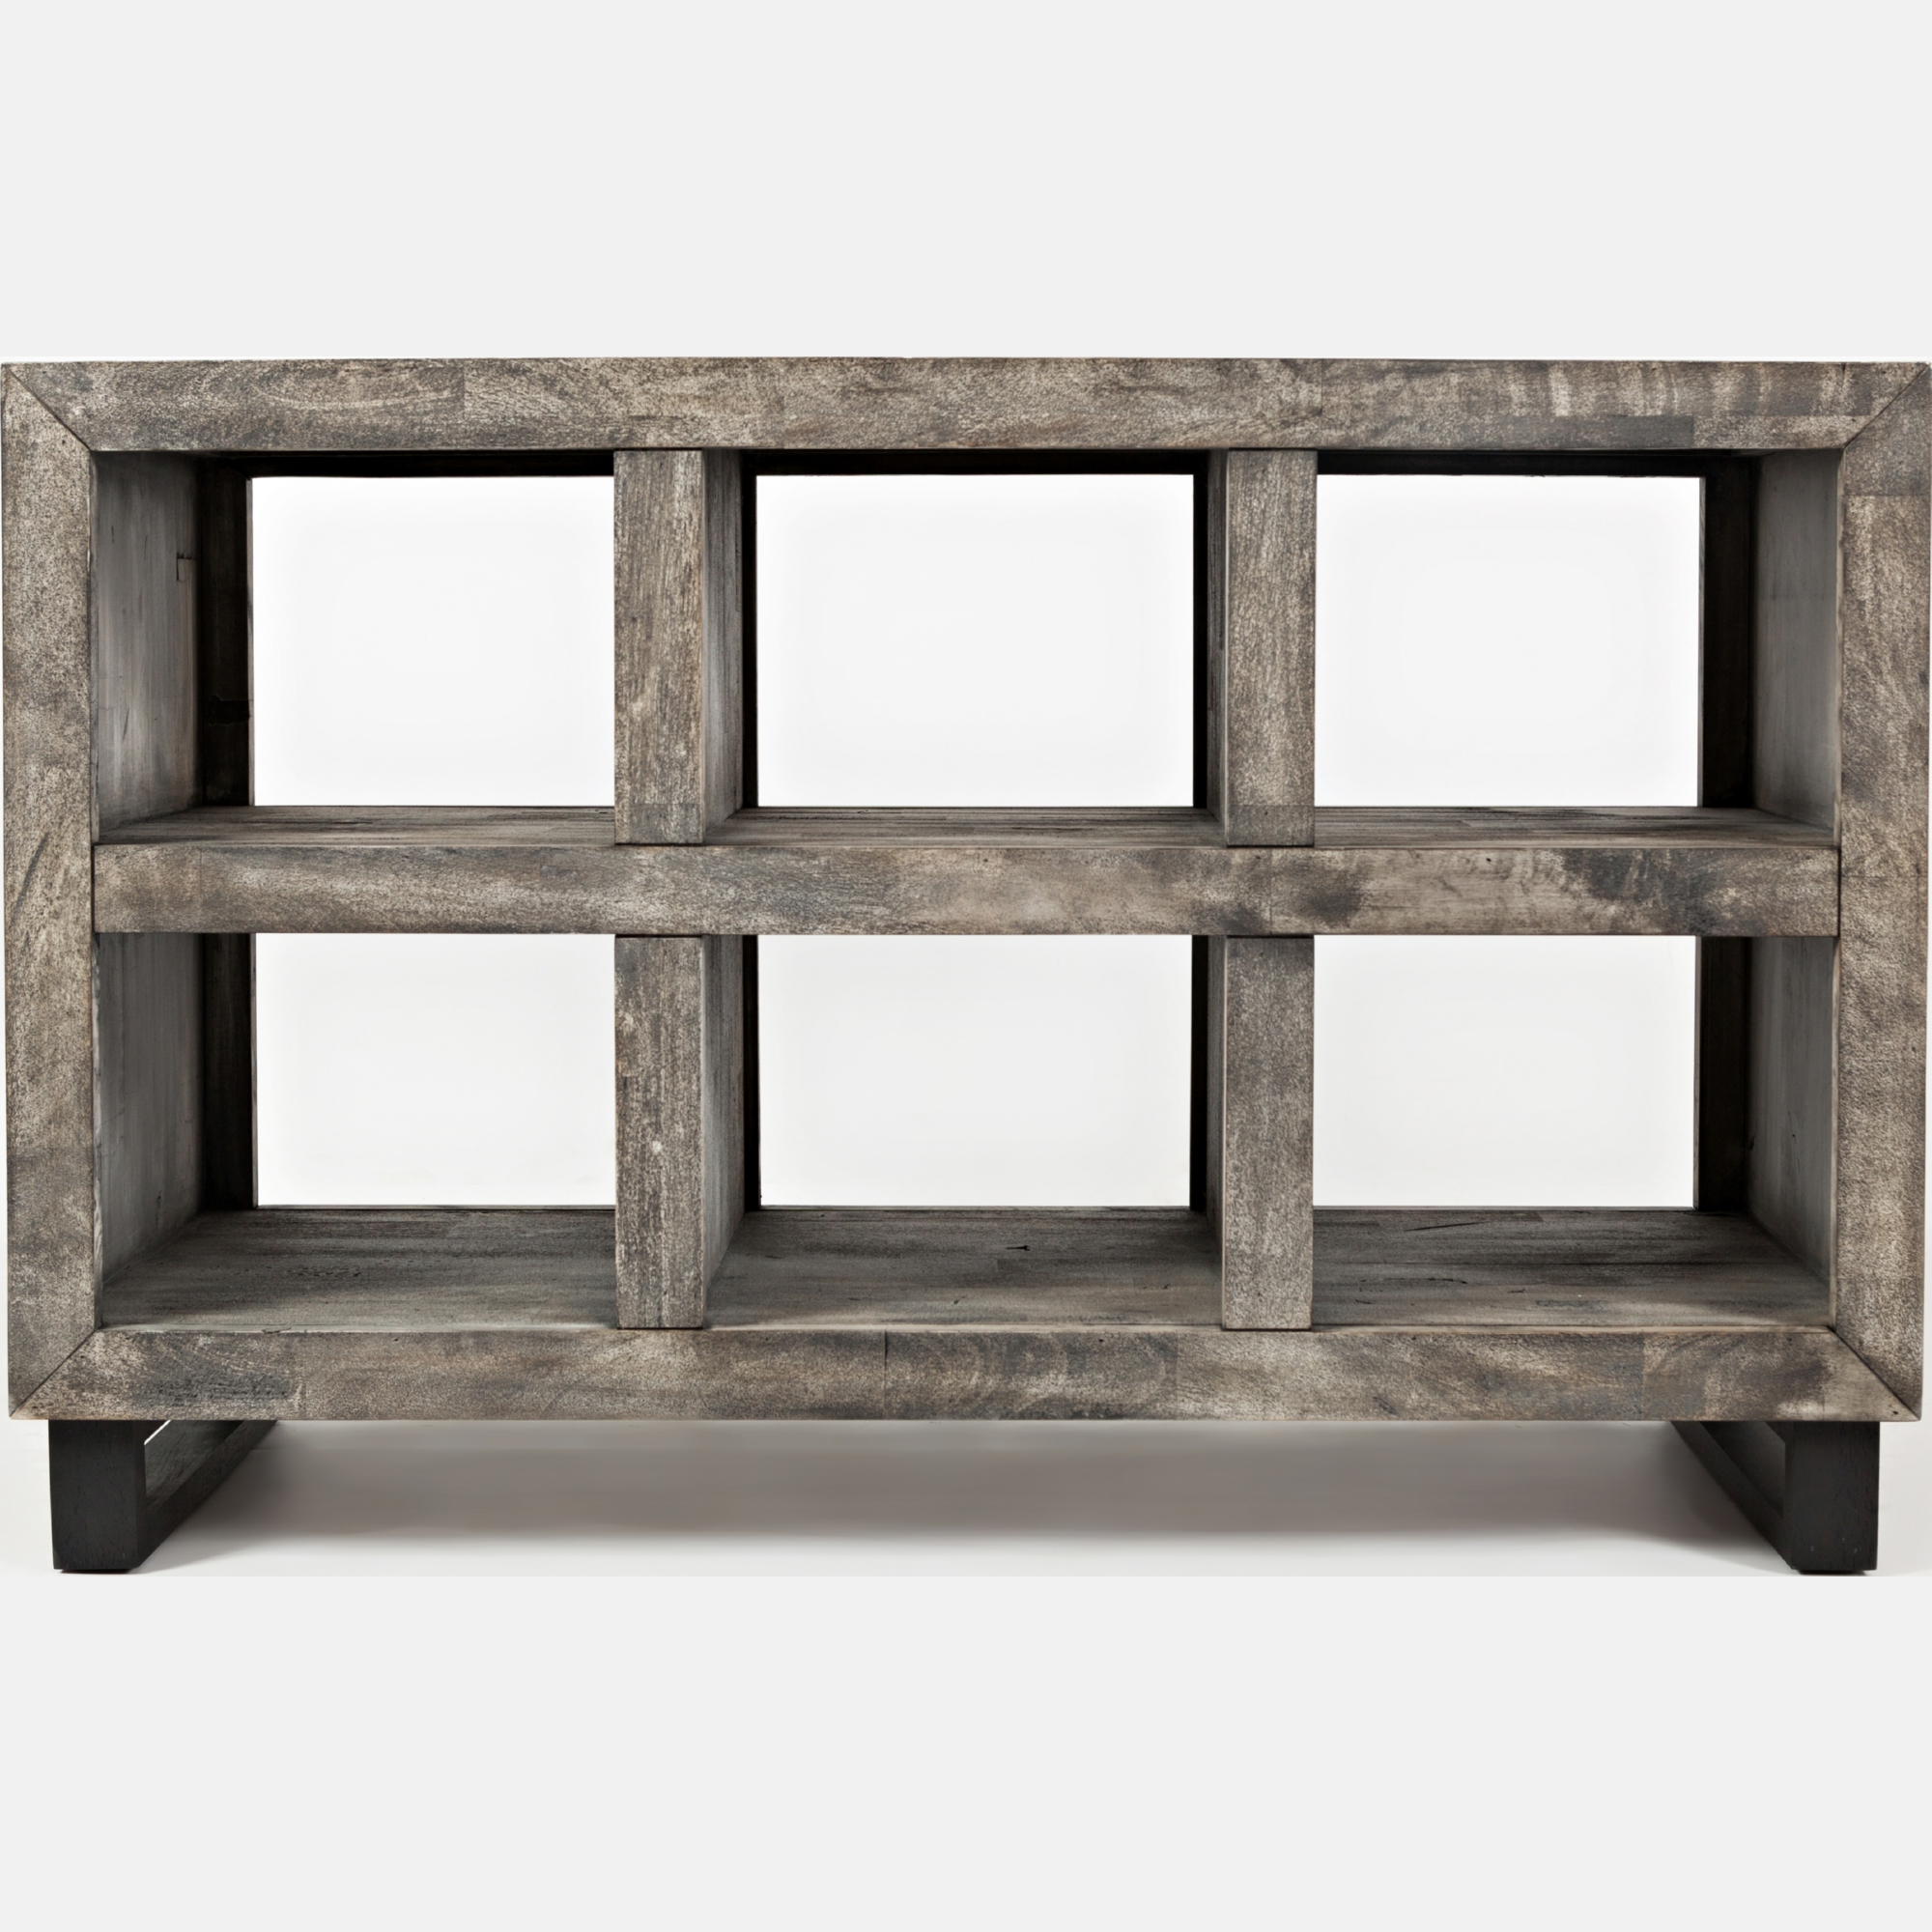 Jofran 1670 4 Mulholland Drive Distressed 6 partment Sofa Table